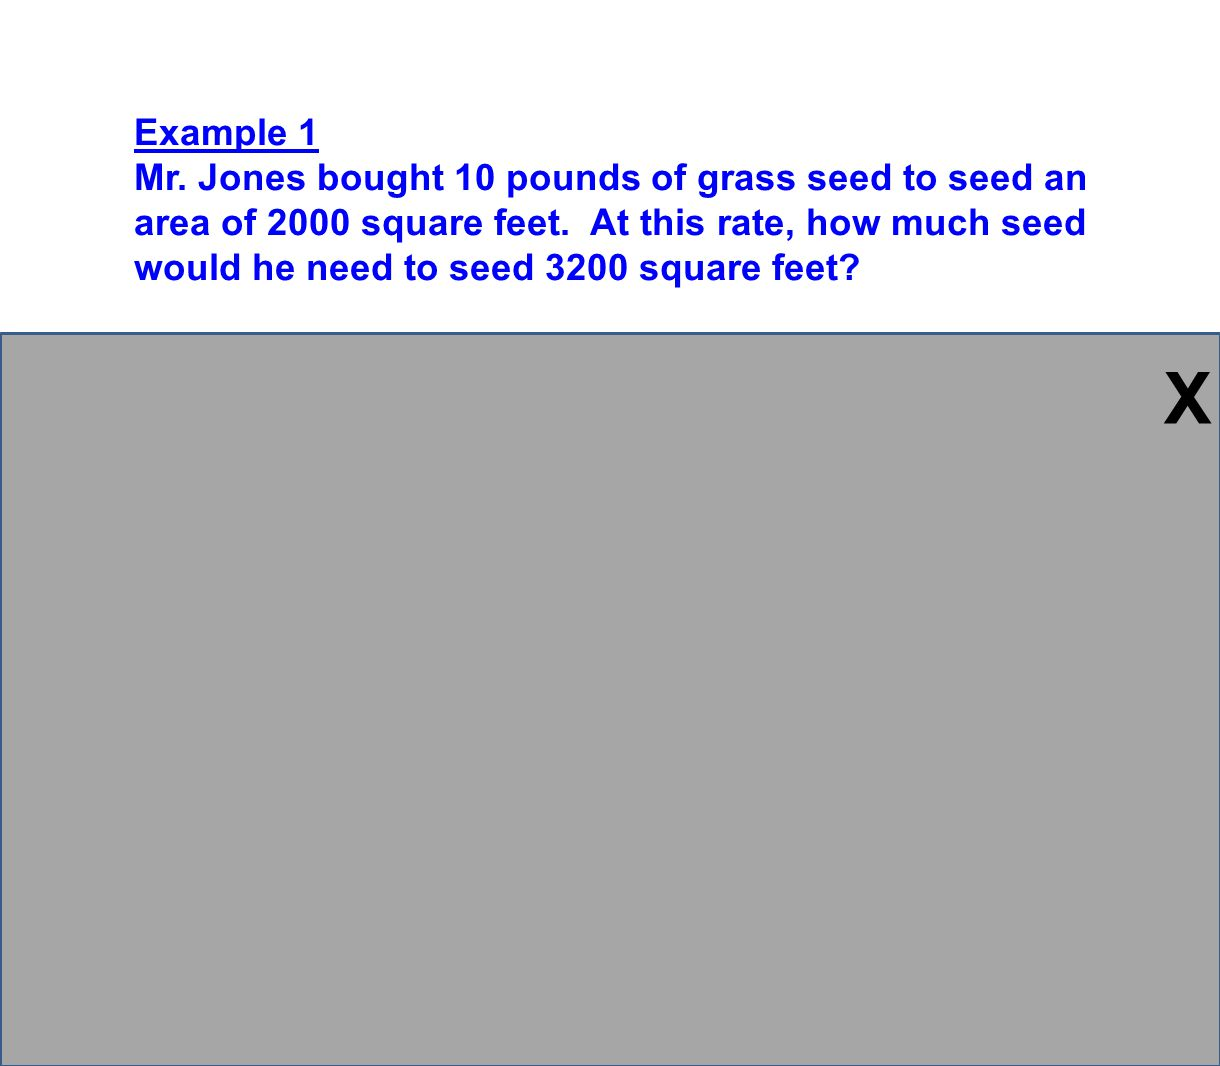 Example 1 Mr. Jones bought 10 pounds of grass seed to seed an area of 2000 square feet. At this rate, how much seed would he need to seed 3200 square